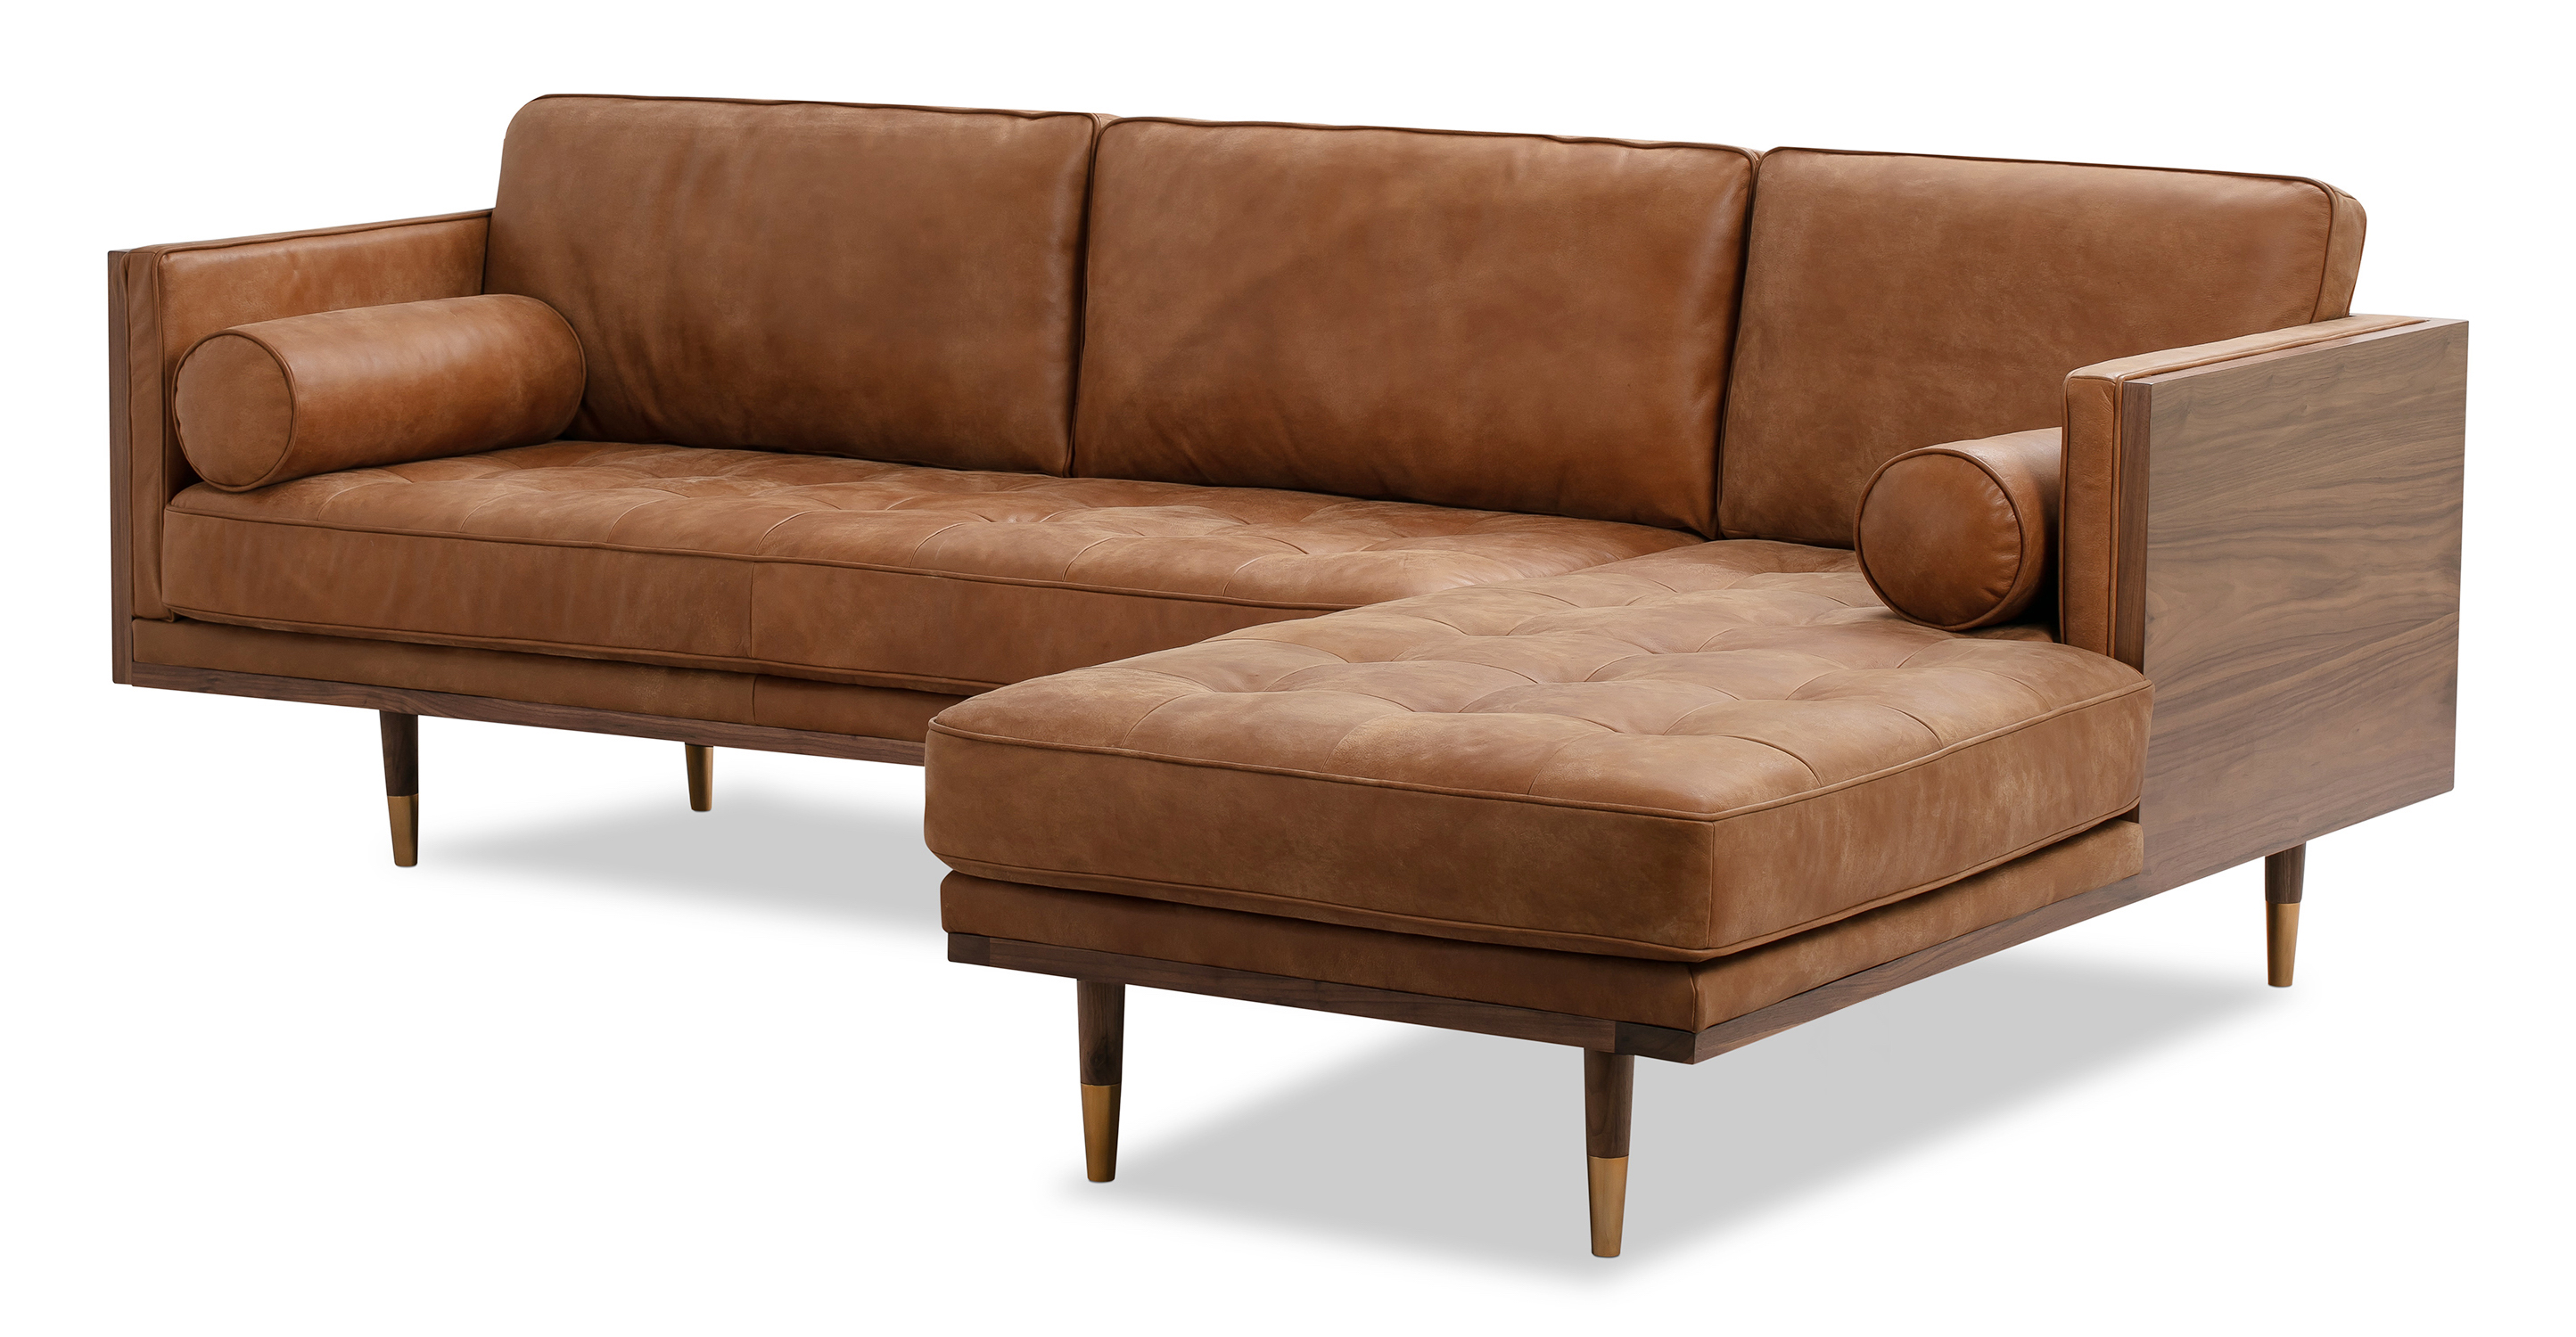 "Woodrow Skandi 95"" Leather Sectional Right, Walnut/Cognac"